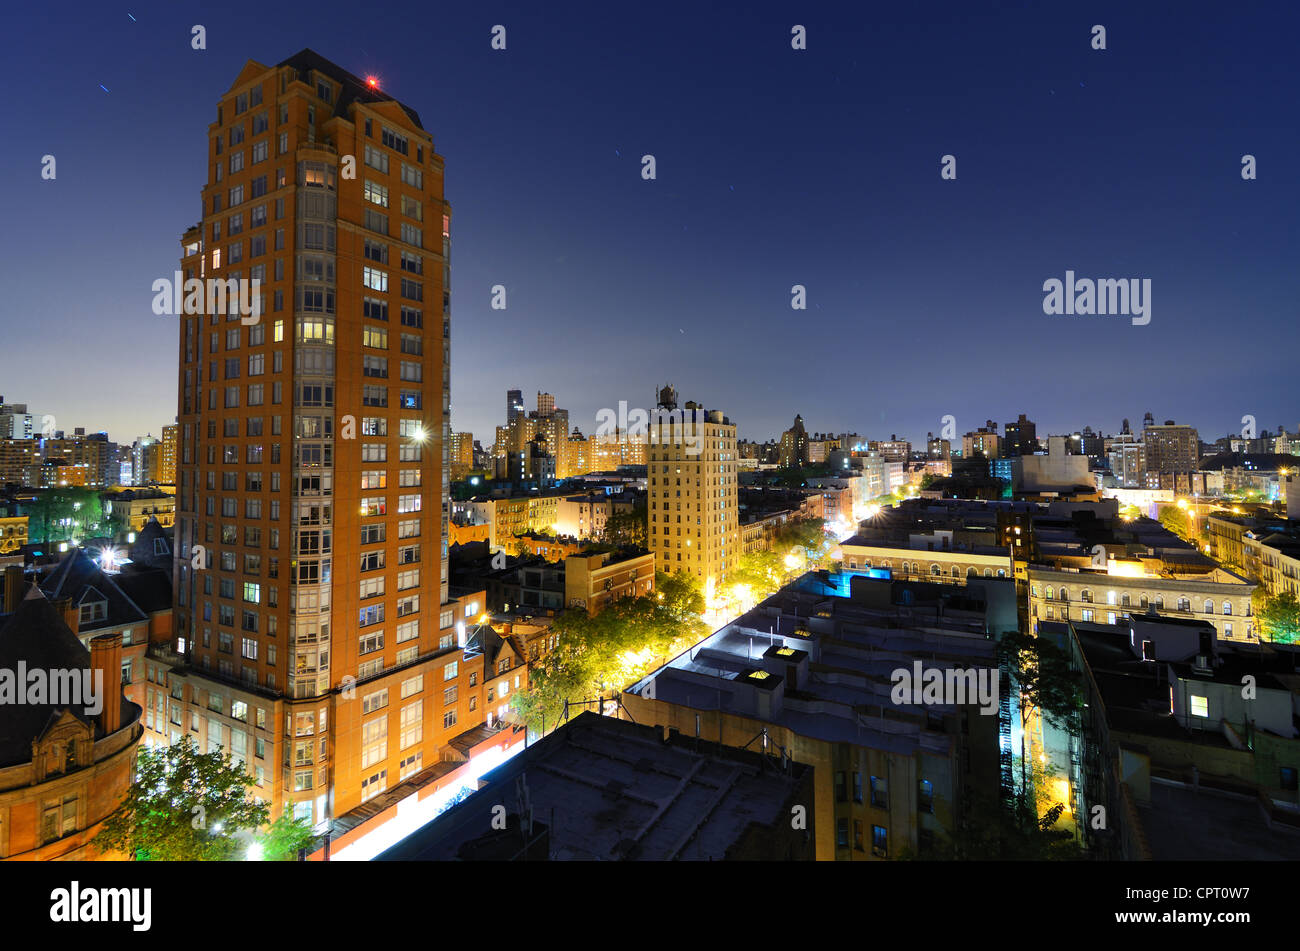 skyline of residential buildings in the Upper West Side of Manhattan at night - Stock Image